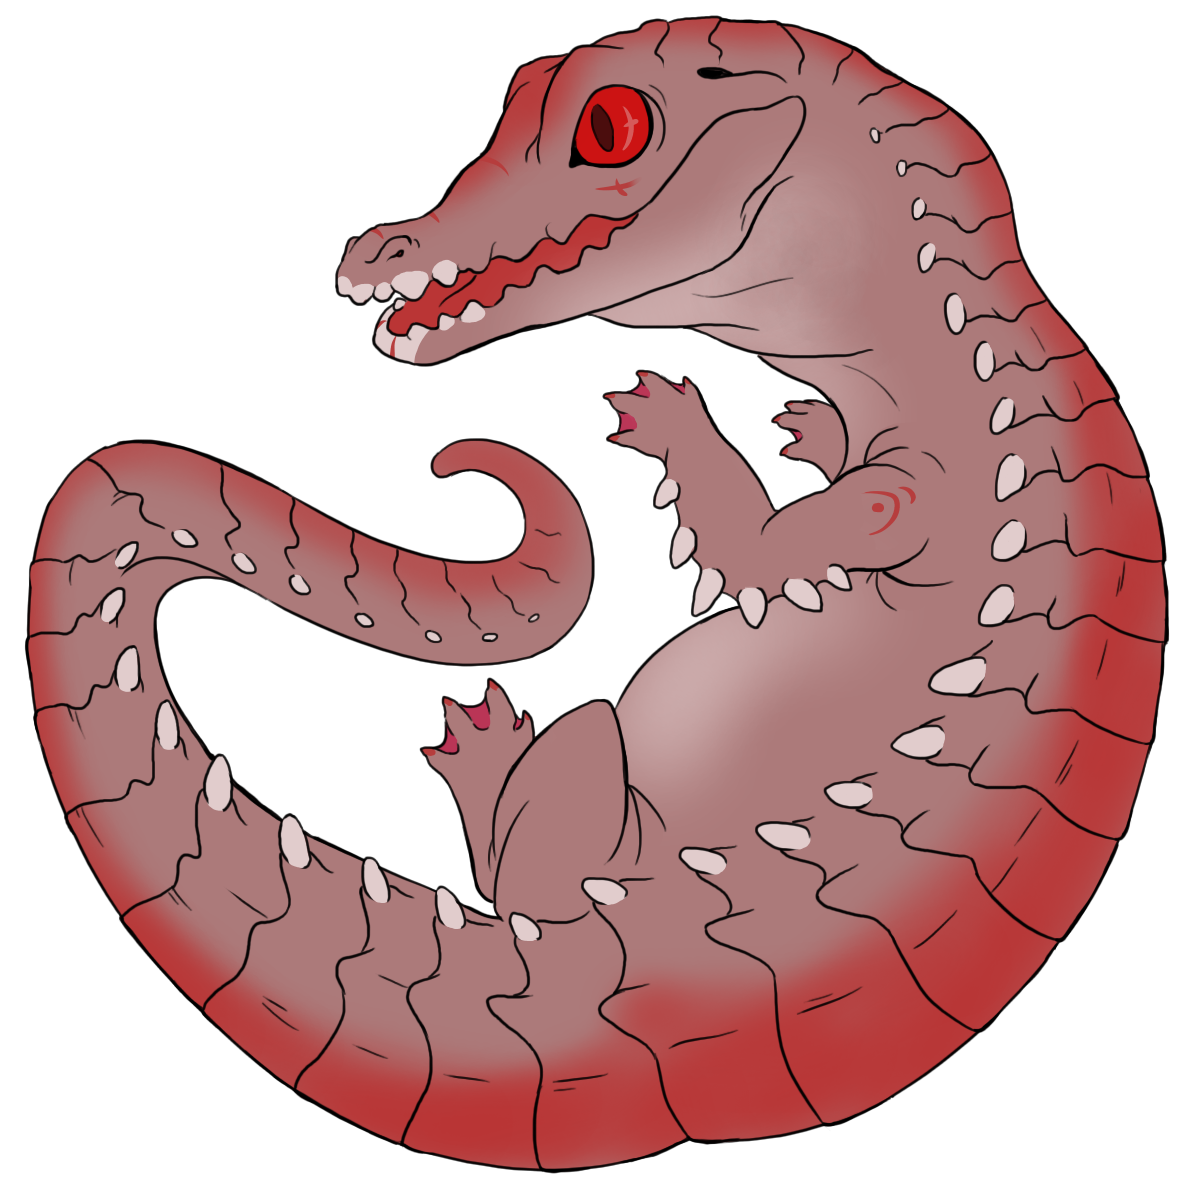 camien_whelp_contest_entry_by_bramfire-d9i143w.png